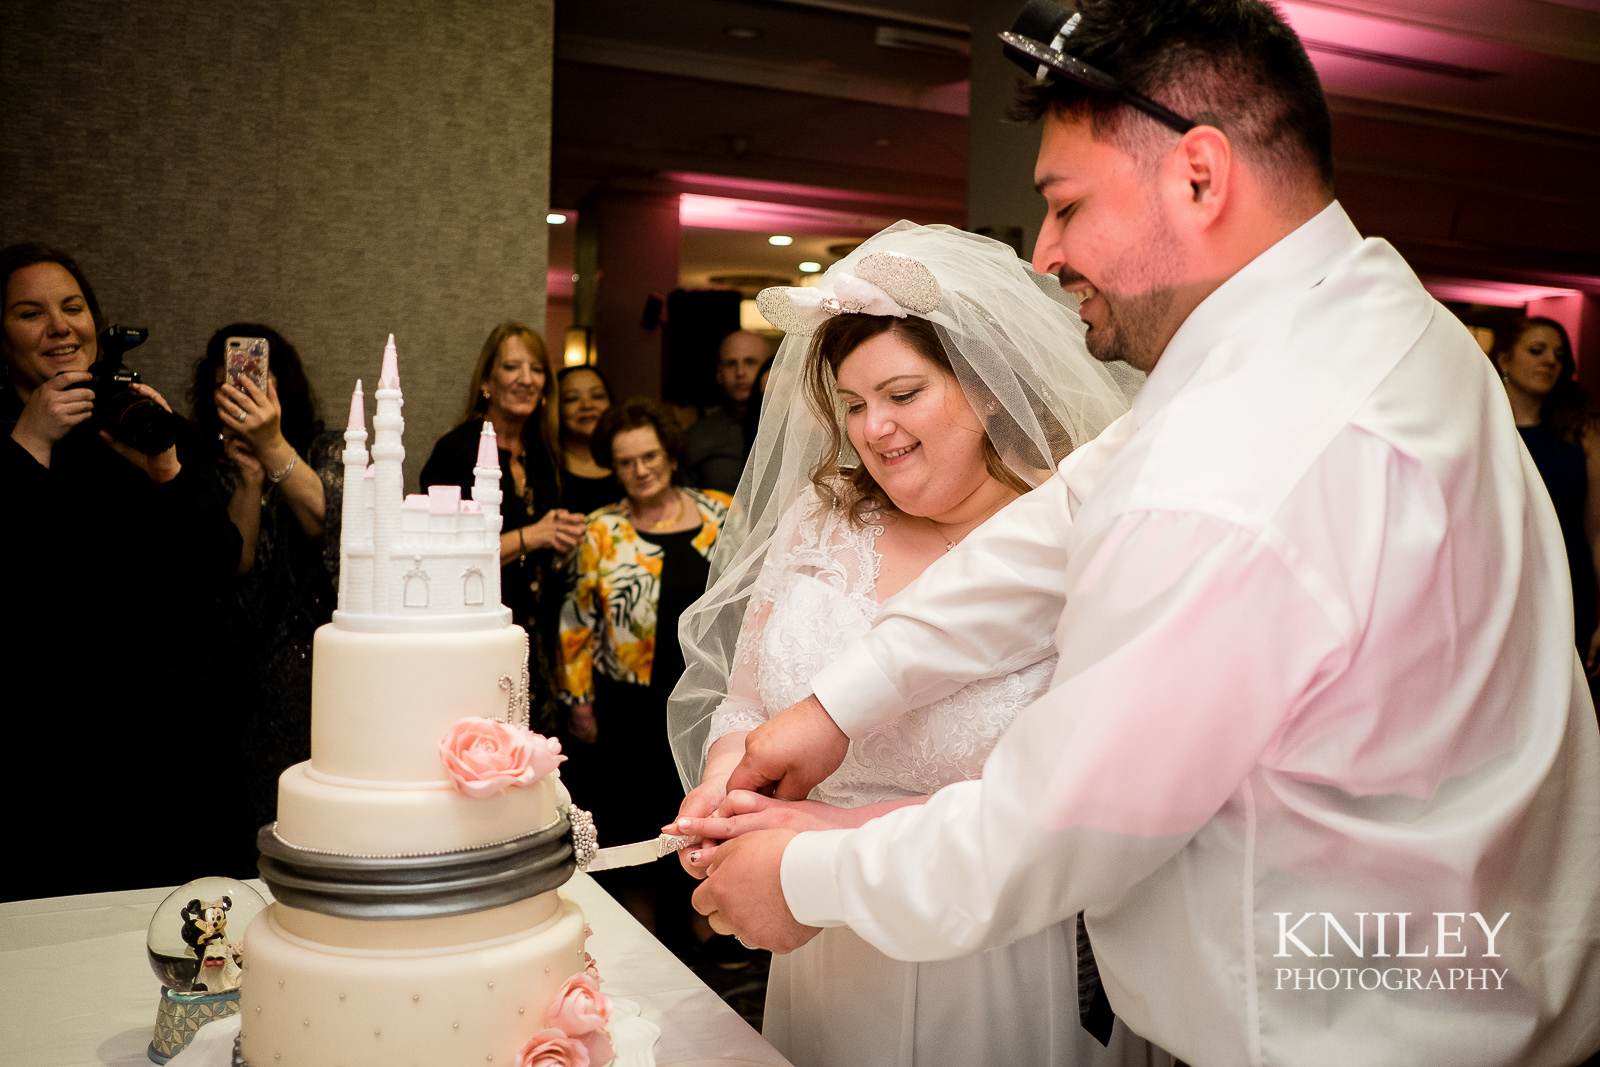 100 - Woodcliff Hotel - Rochester NY wedding photo - Kniley Photography.jpg